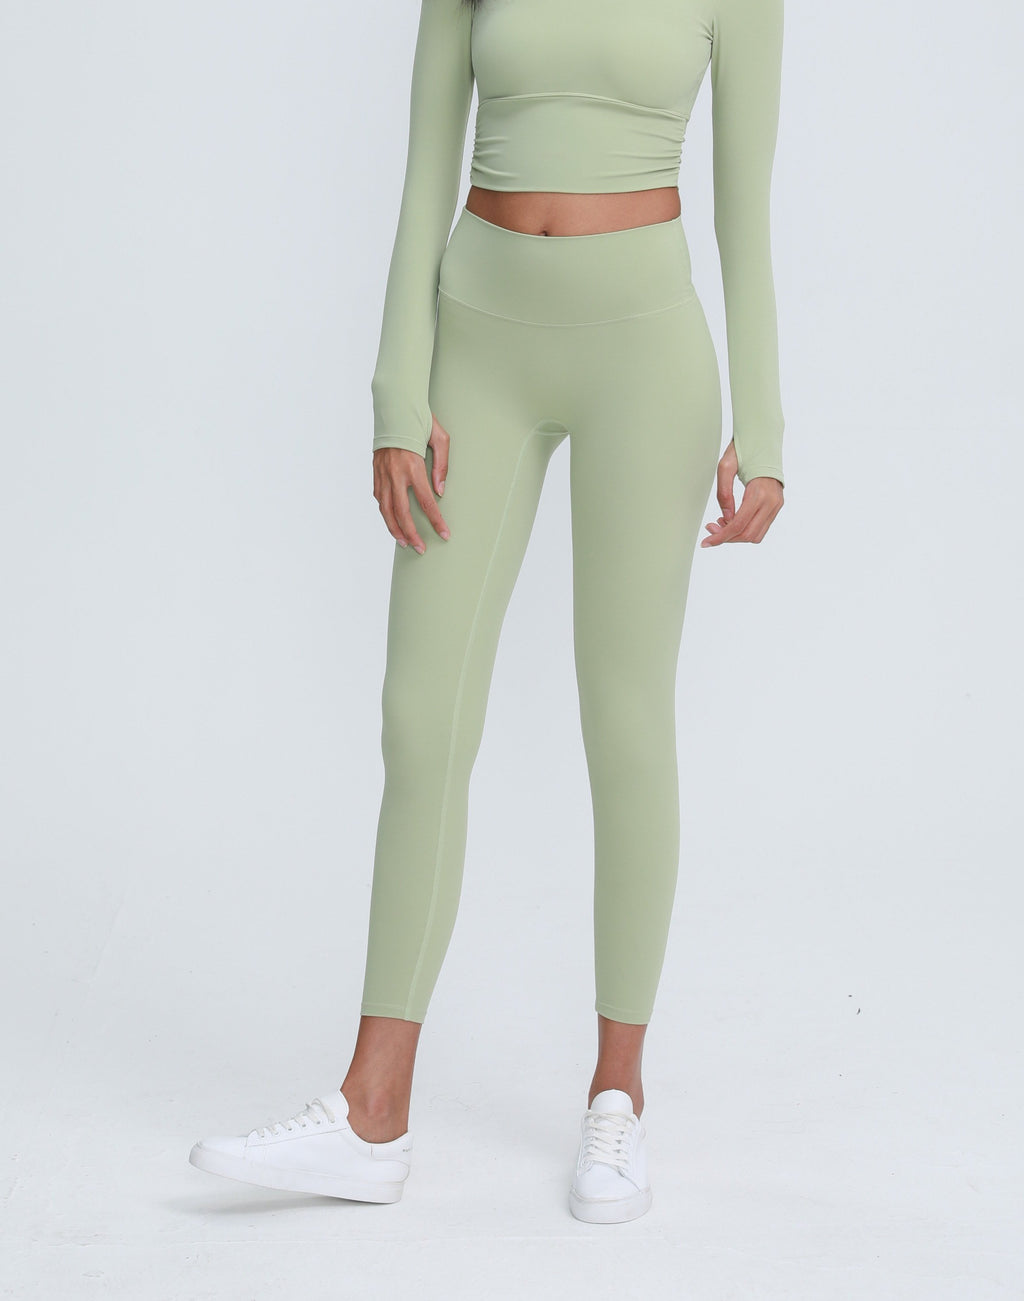 Astoria LUXE Max Support Legging - Pale Green